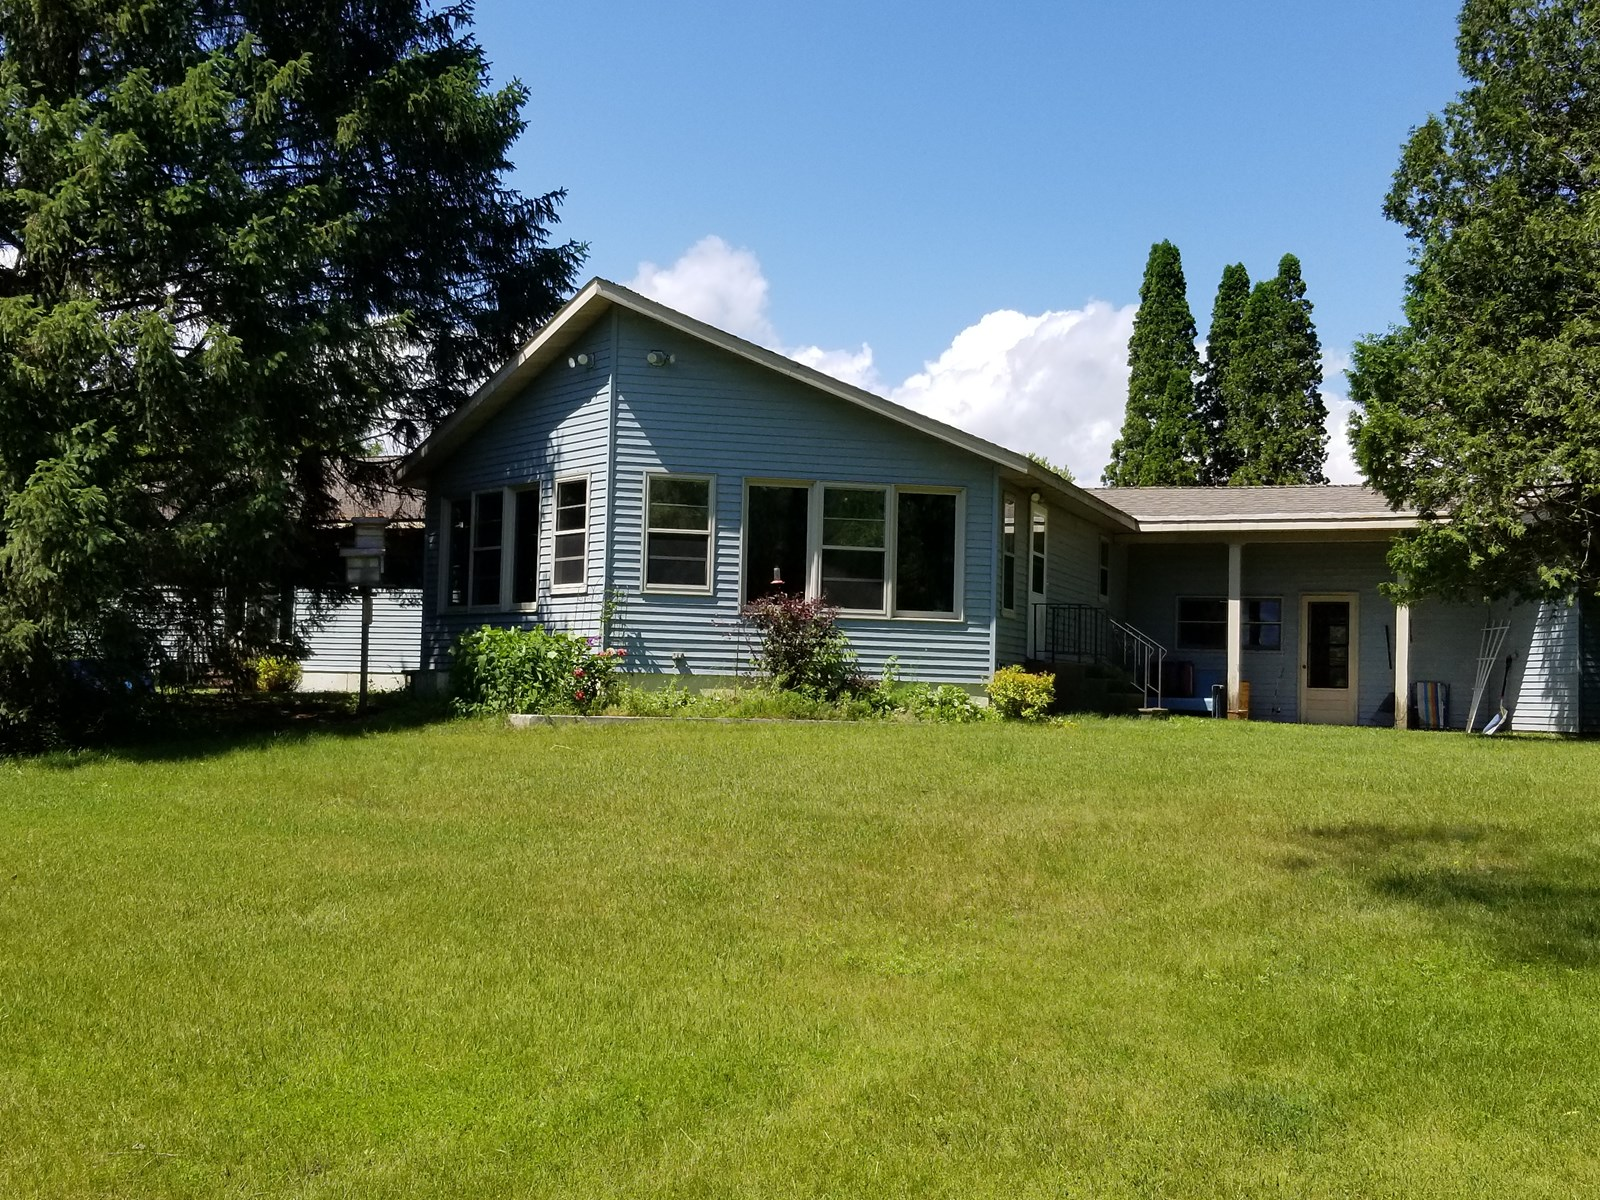 Home for sale on Junction Lake, Waupaca WI